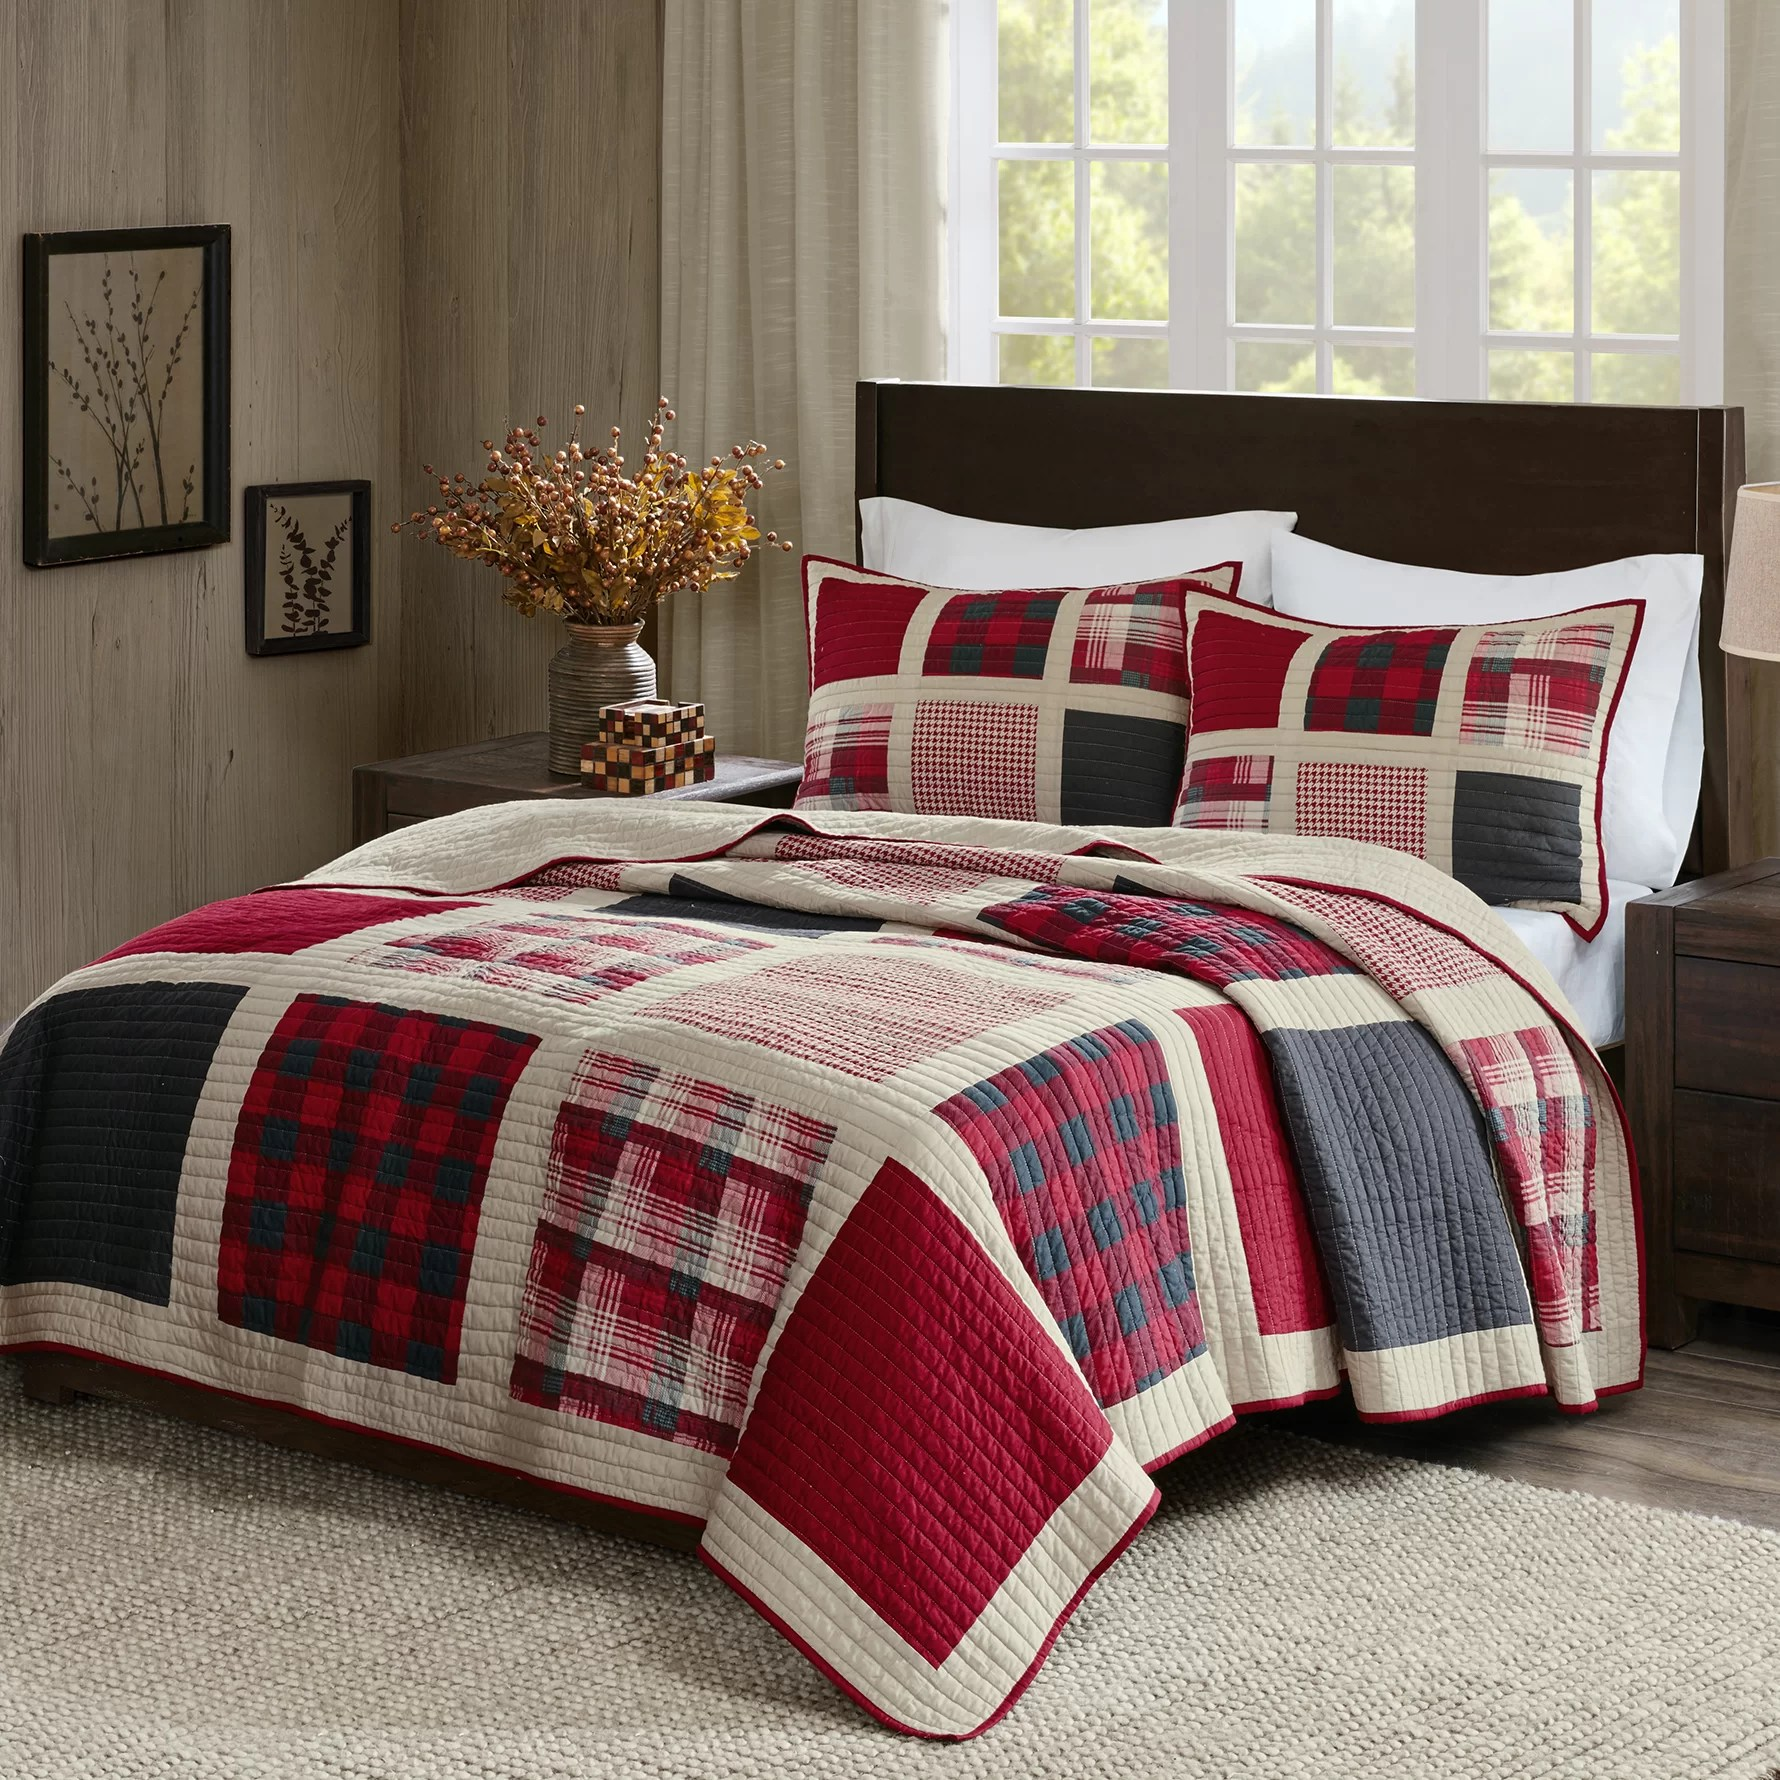 Huntington Bedroom Furniture Huntington 3 Piece Quilt Set